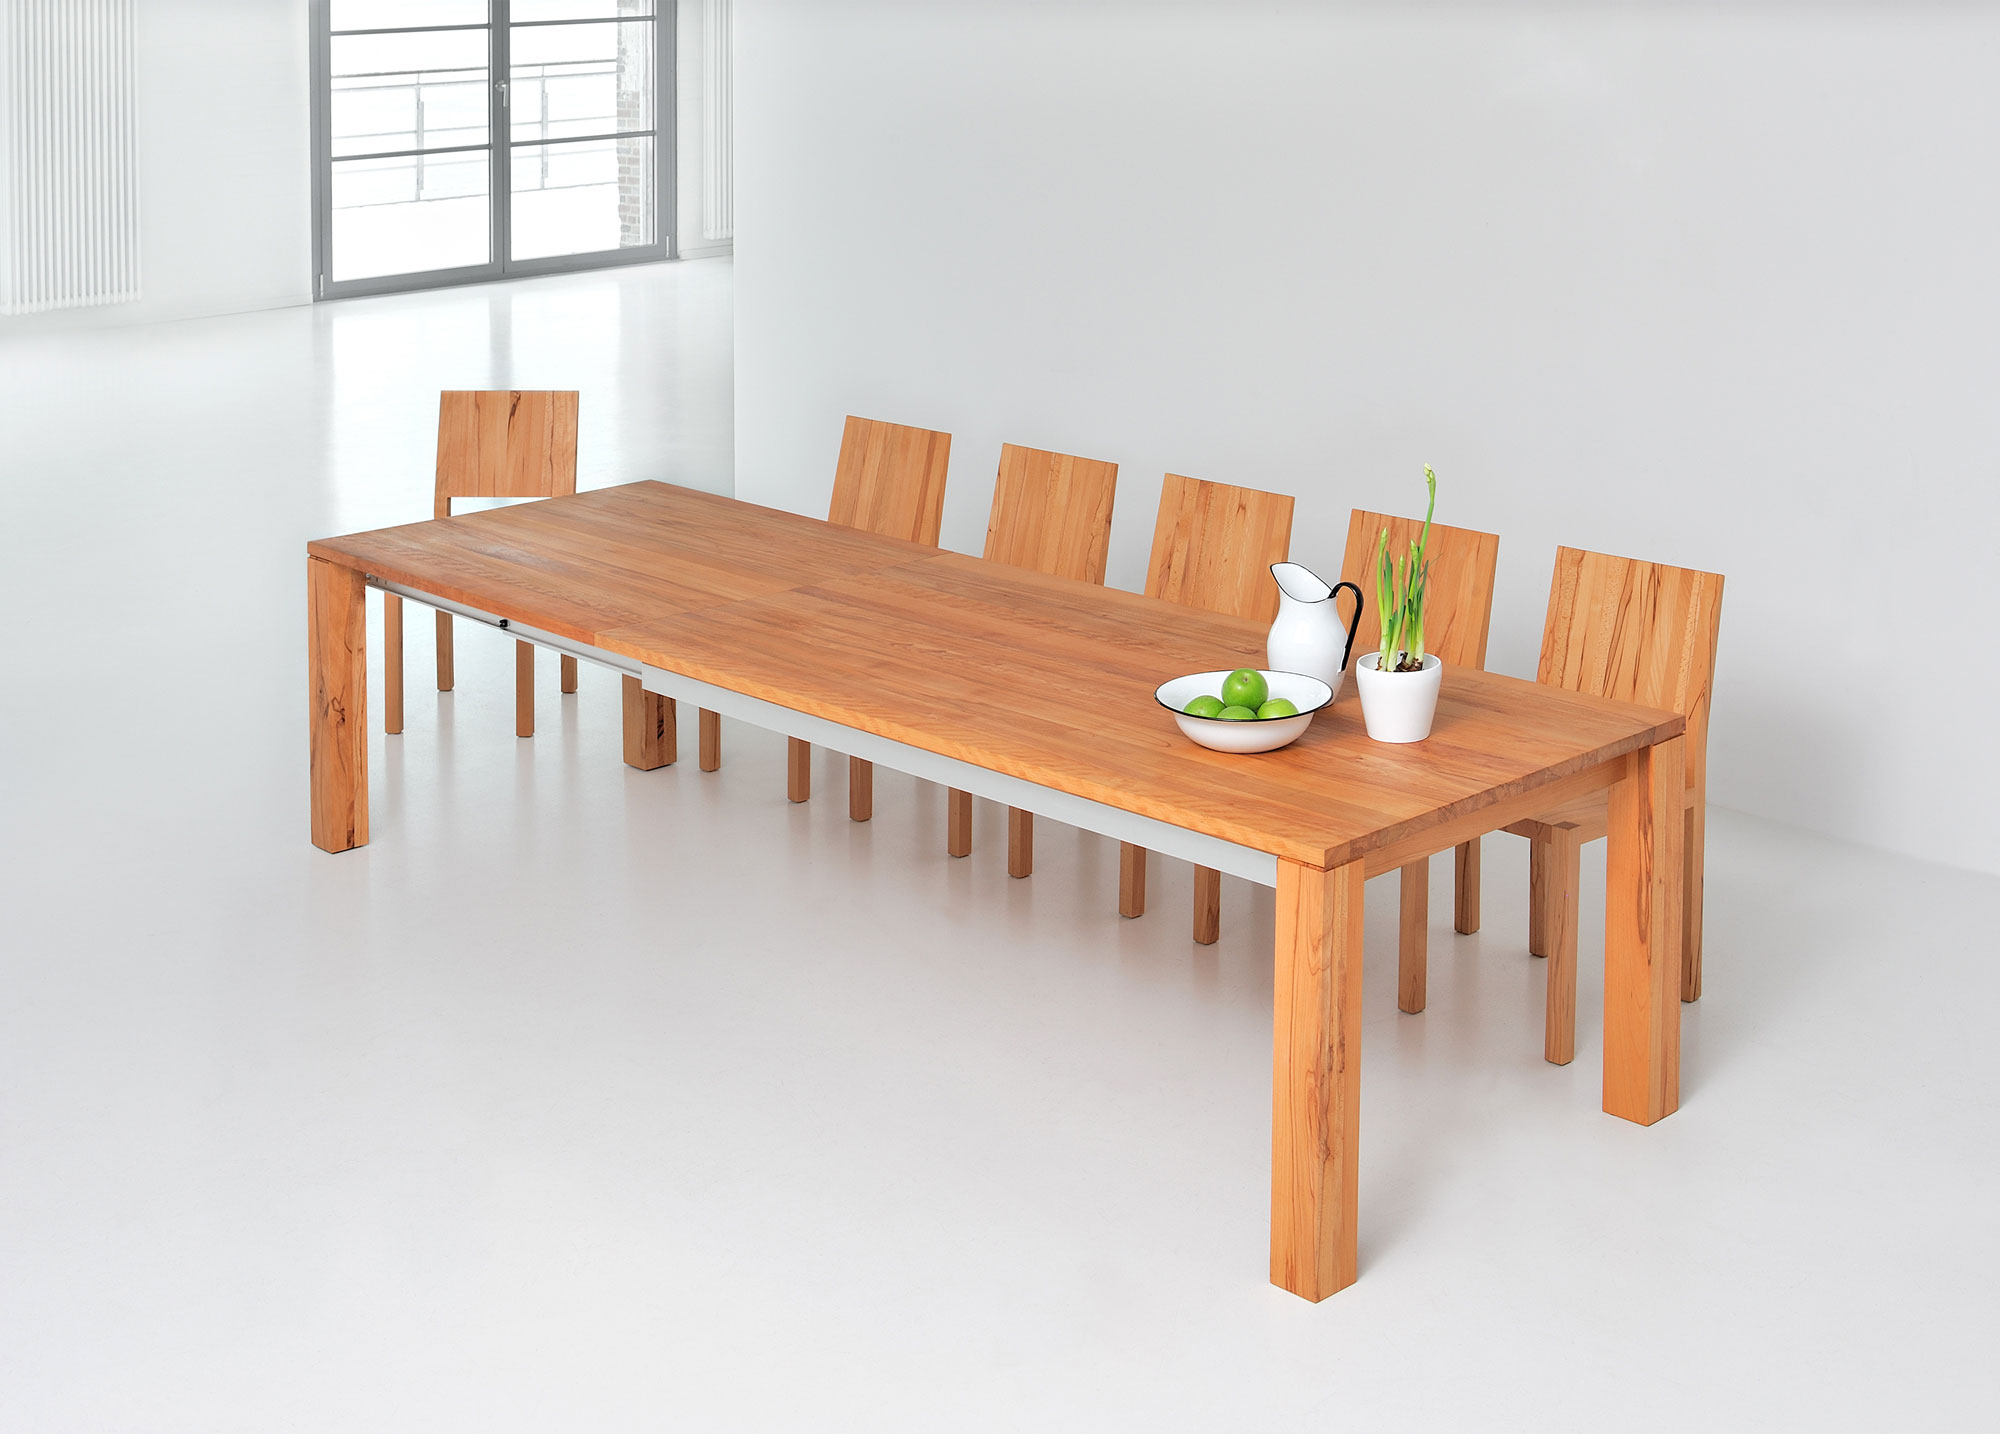 Extendable Dining Table AMBER BUTTERFLY A32731Postk custom made in solid wood by vitamin design